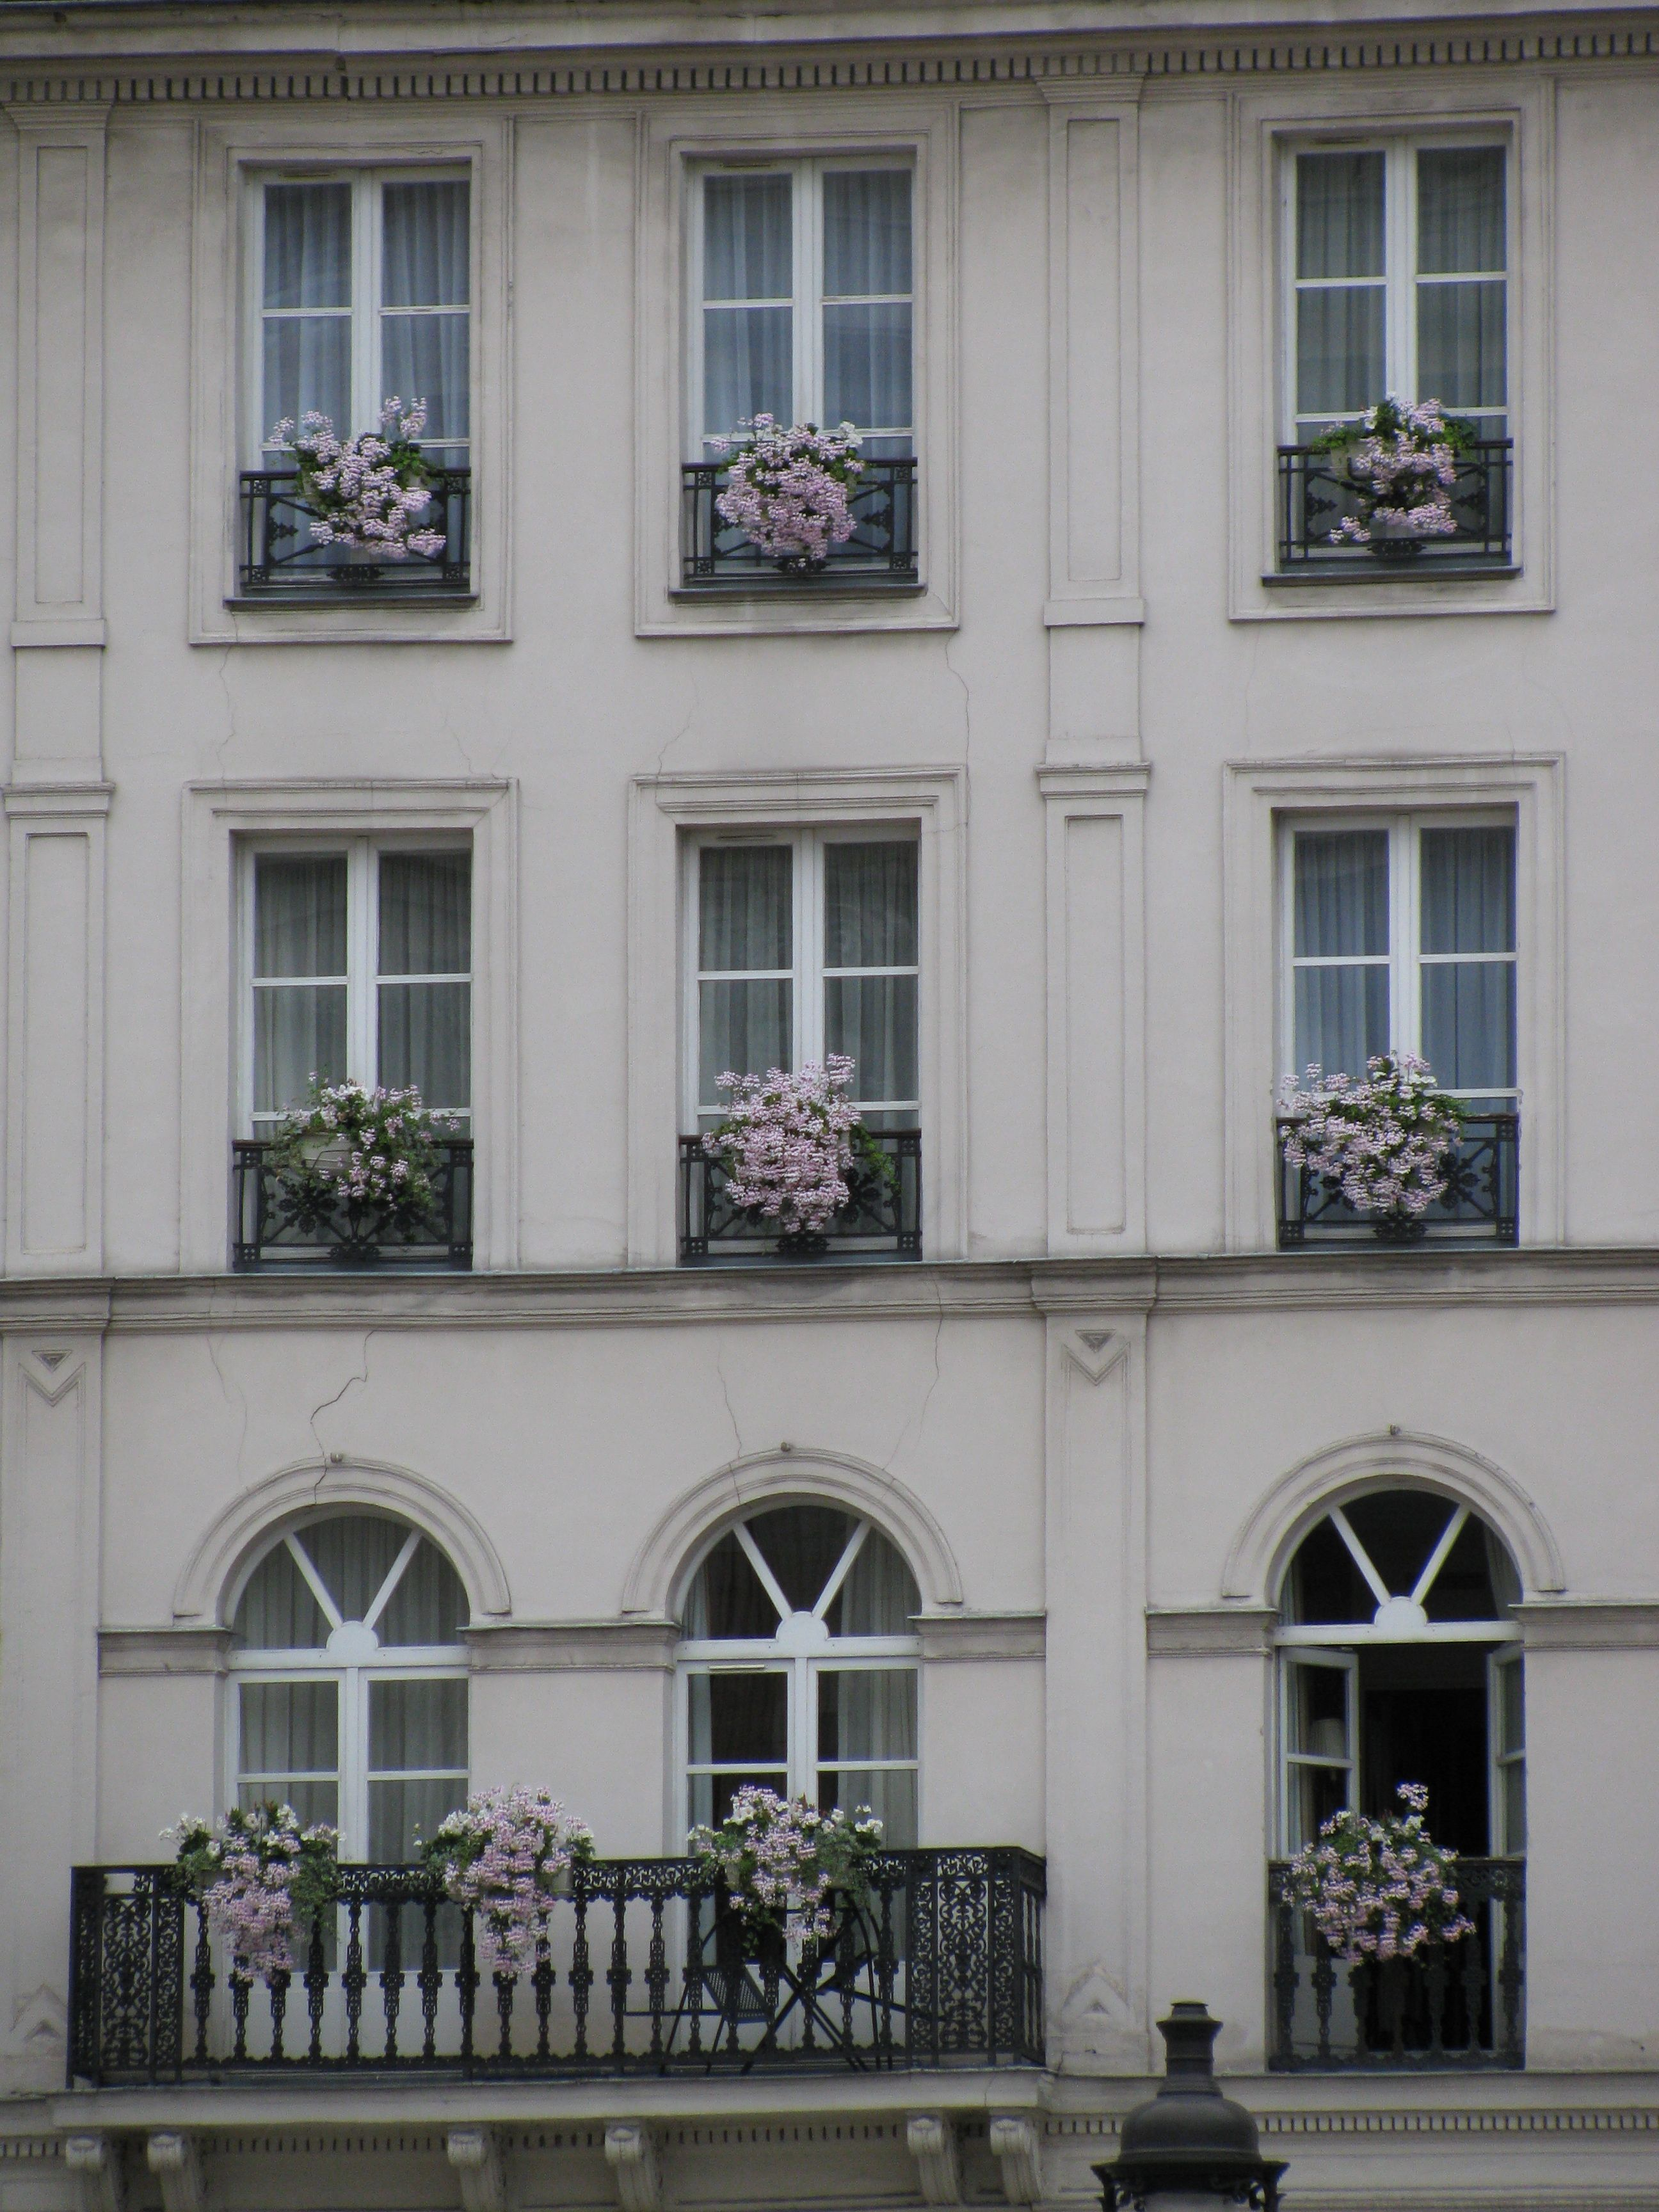 Saw this apartment building in Paris and fell in love